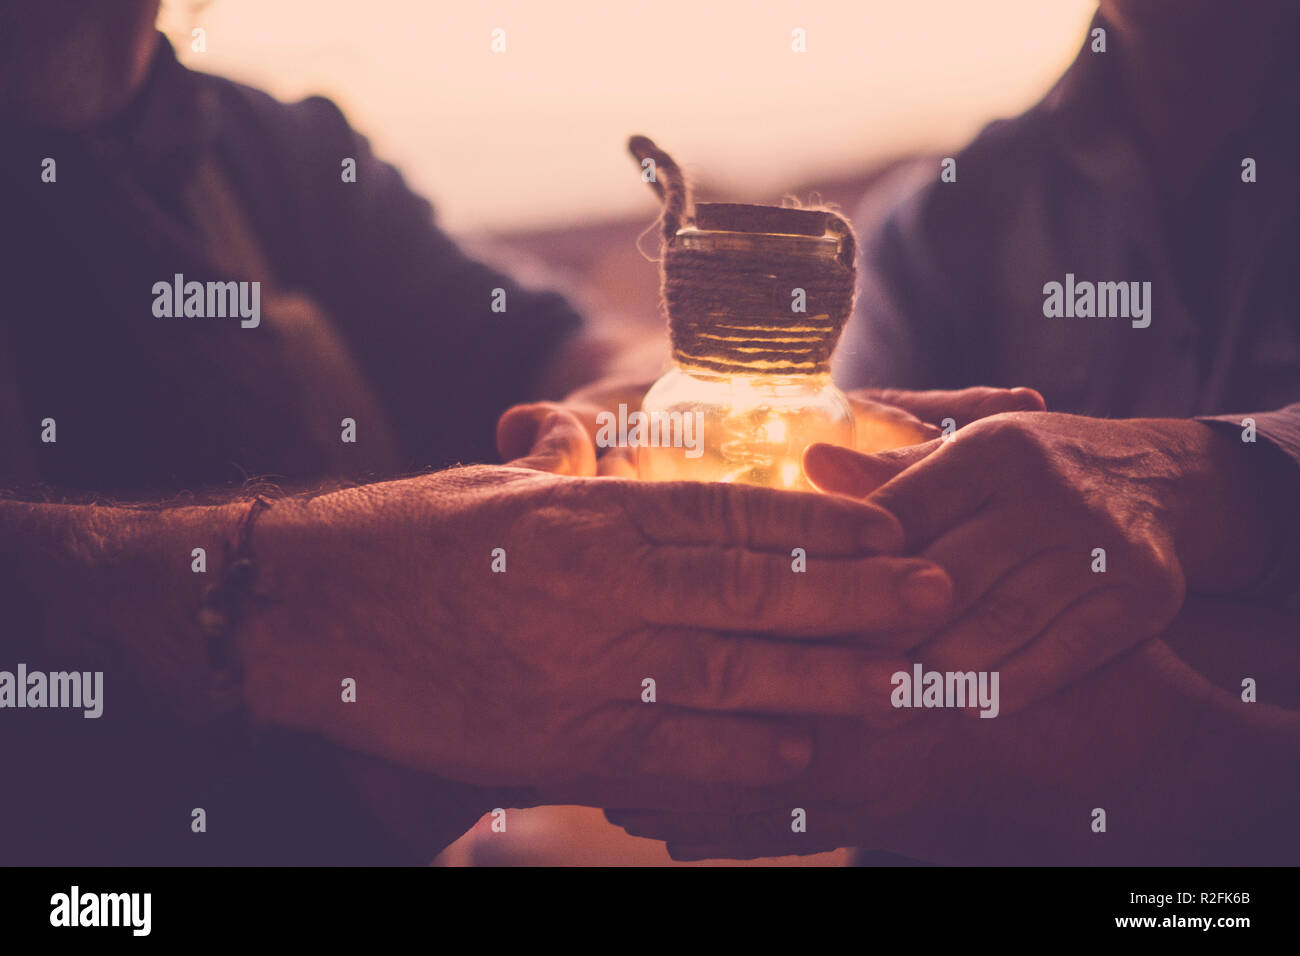 8 joined hands hold a small glass jar containing a yellow light. - Stock Image